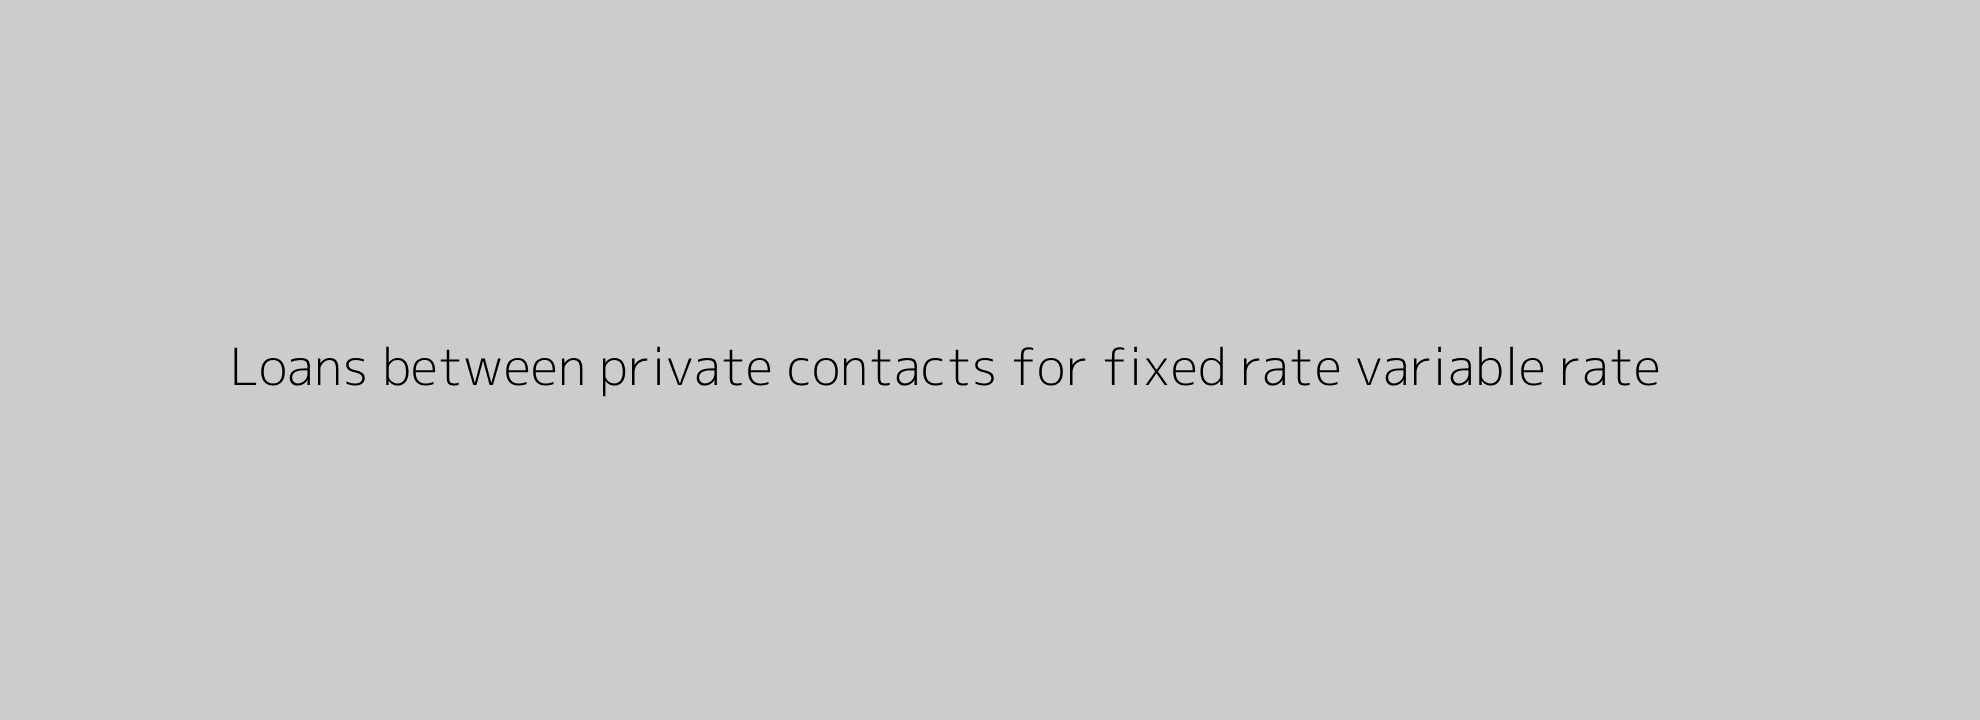 Loans between private contacts for fixed rate variable rate